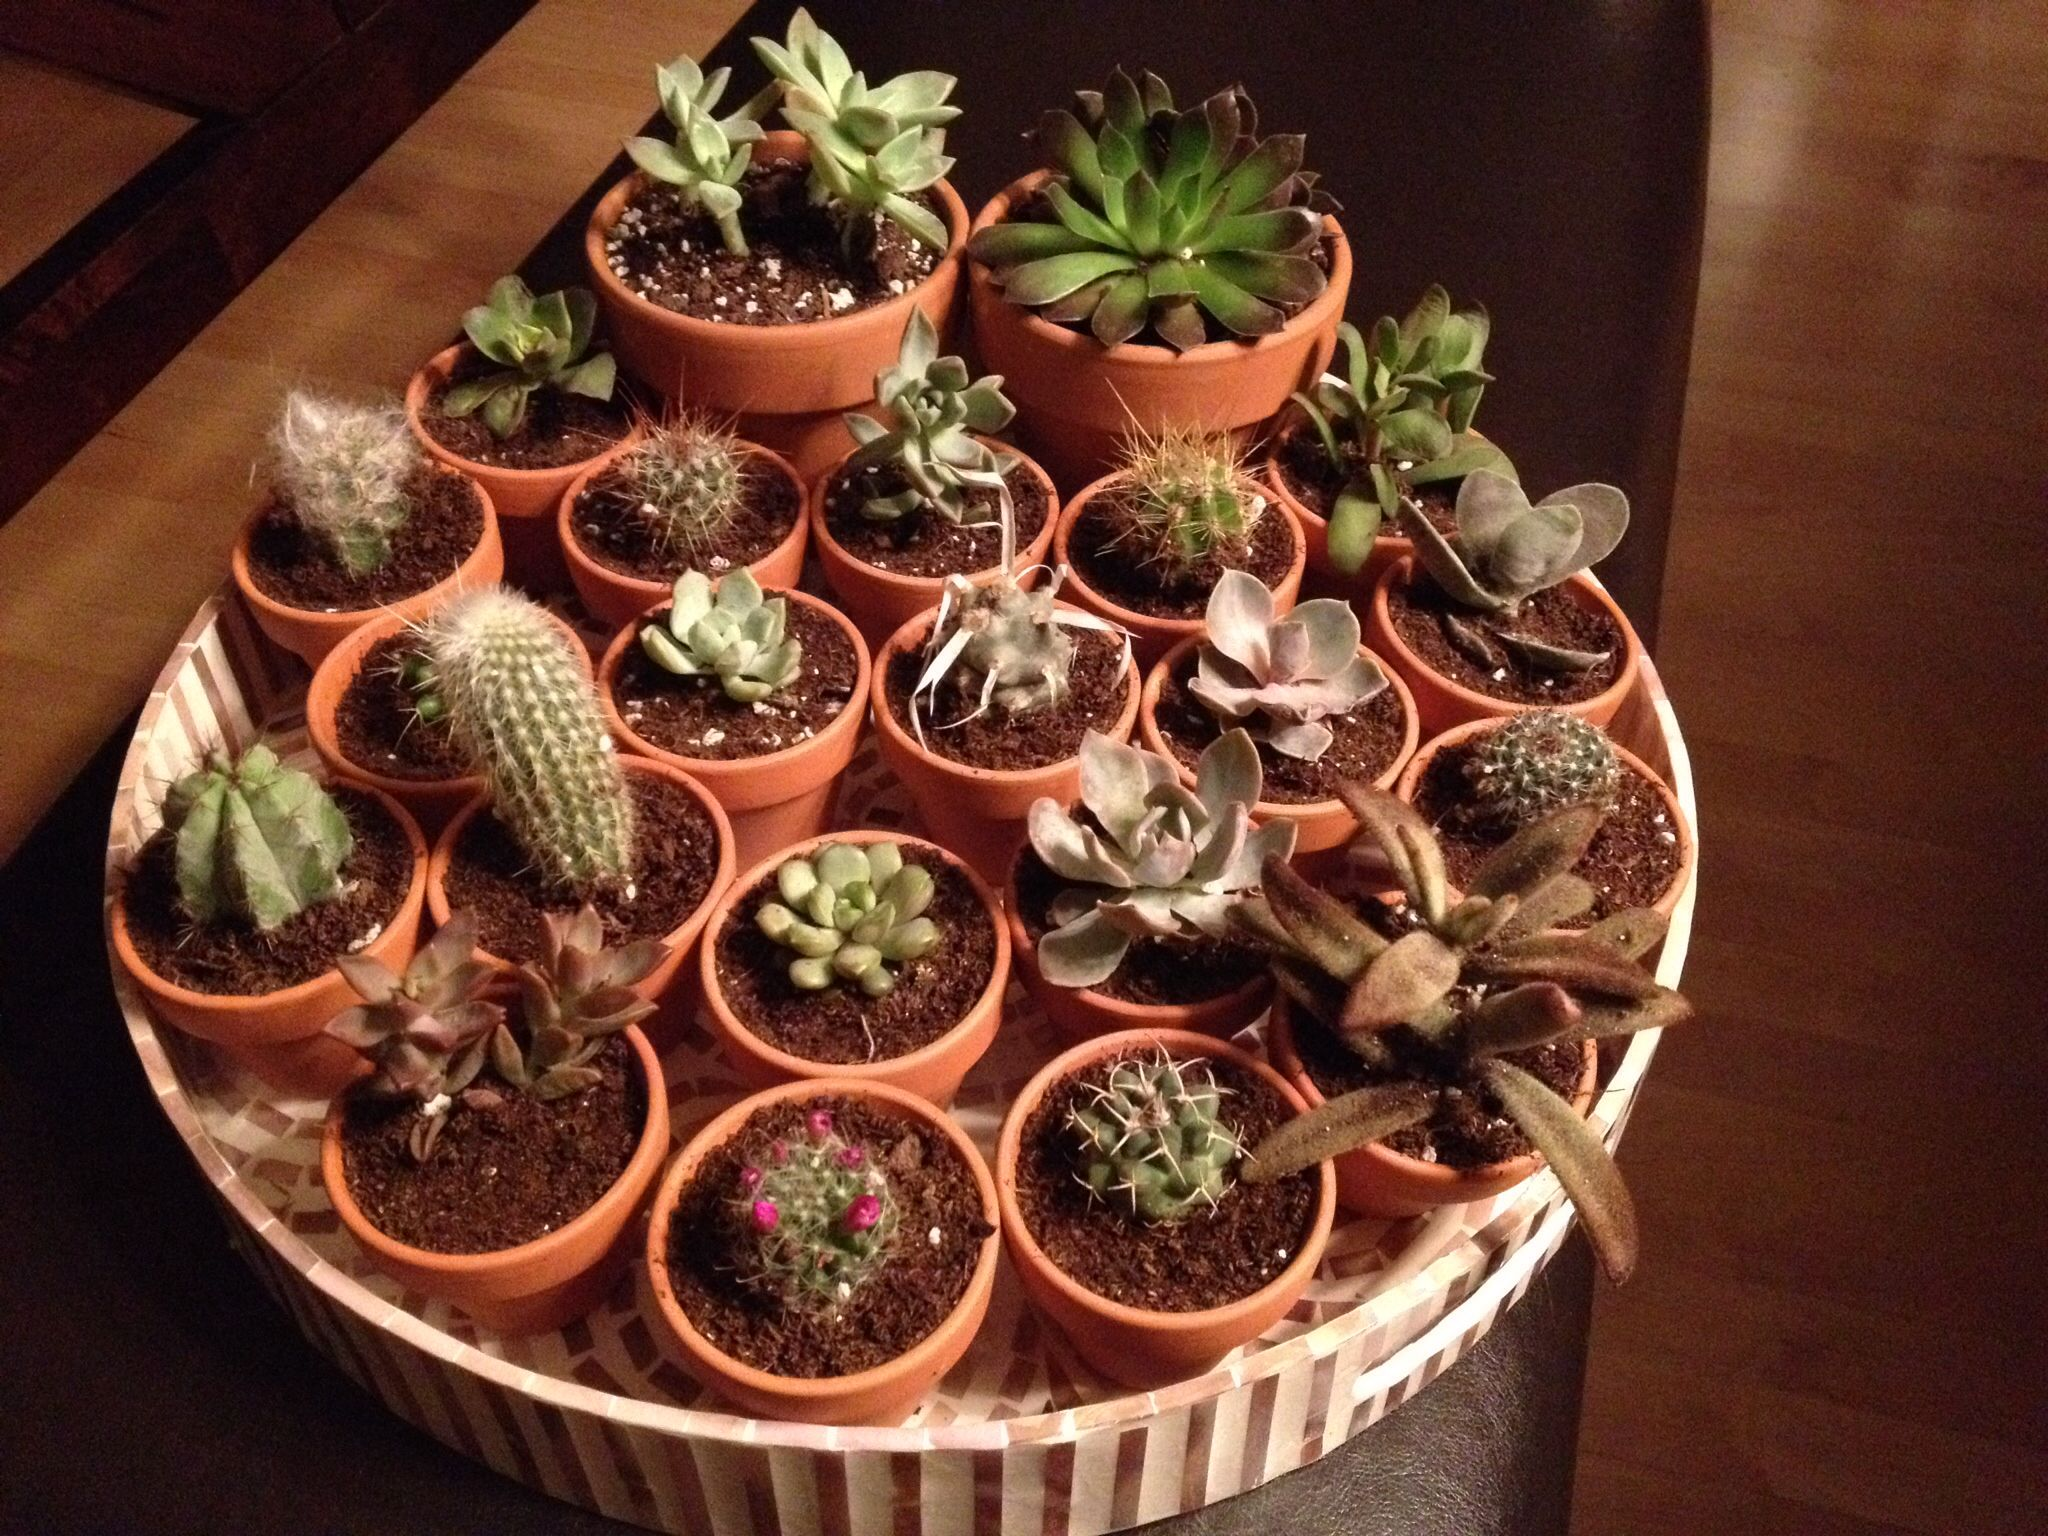 Succulents For Party Favors Amazon 20 Individual Plants For 25 Transplanted To Mini Terra Cotta Pots Fro Succulents Terracotta Pots Party Favors